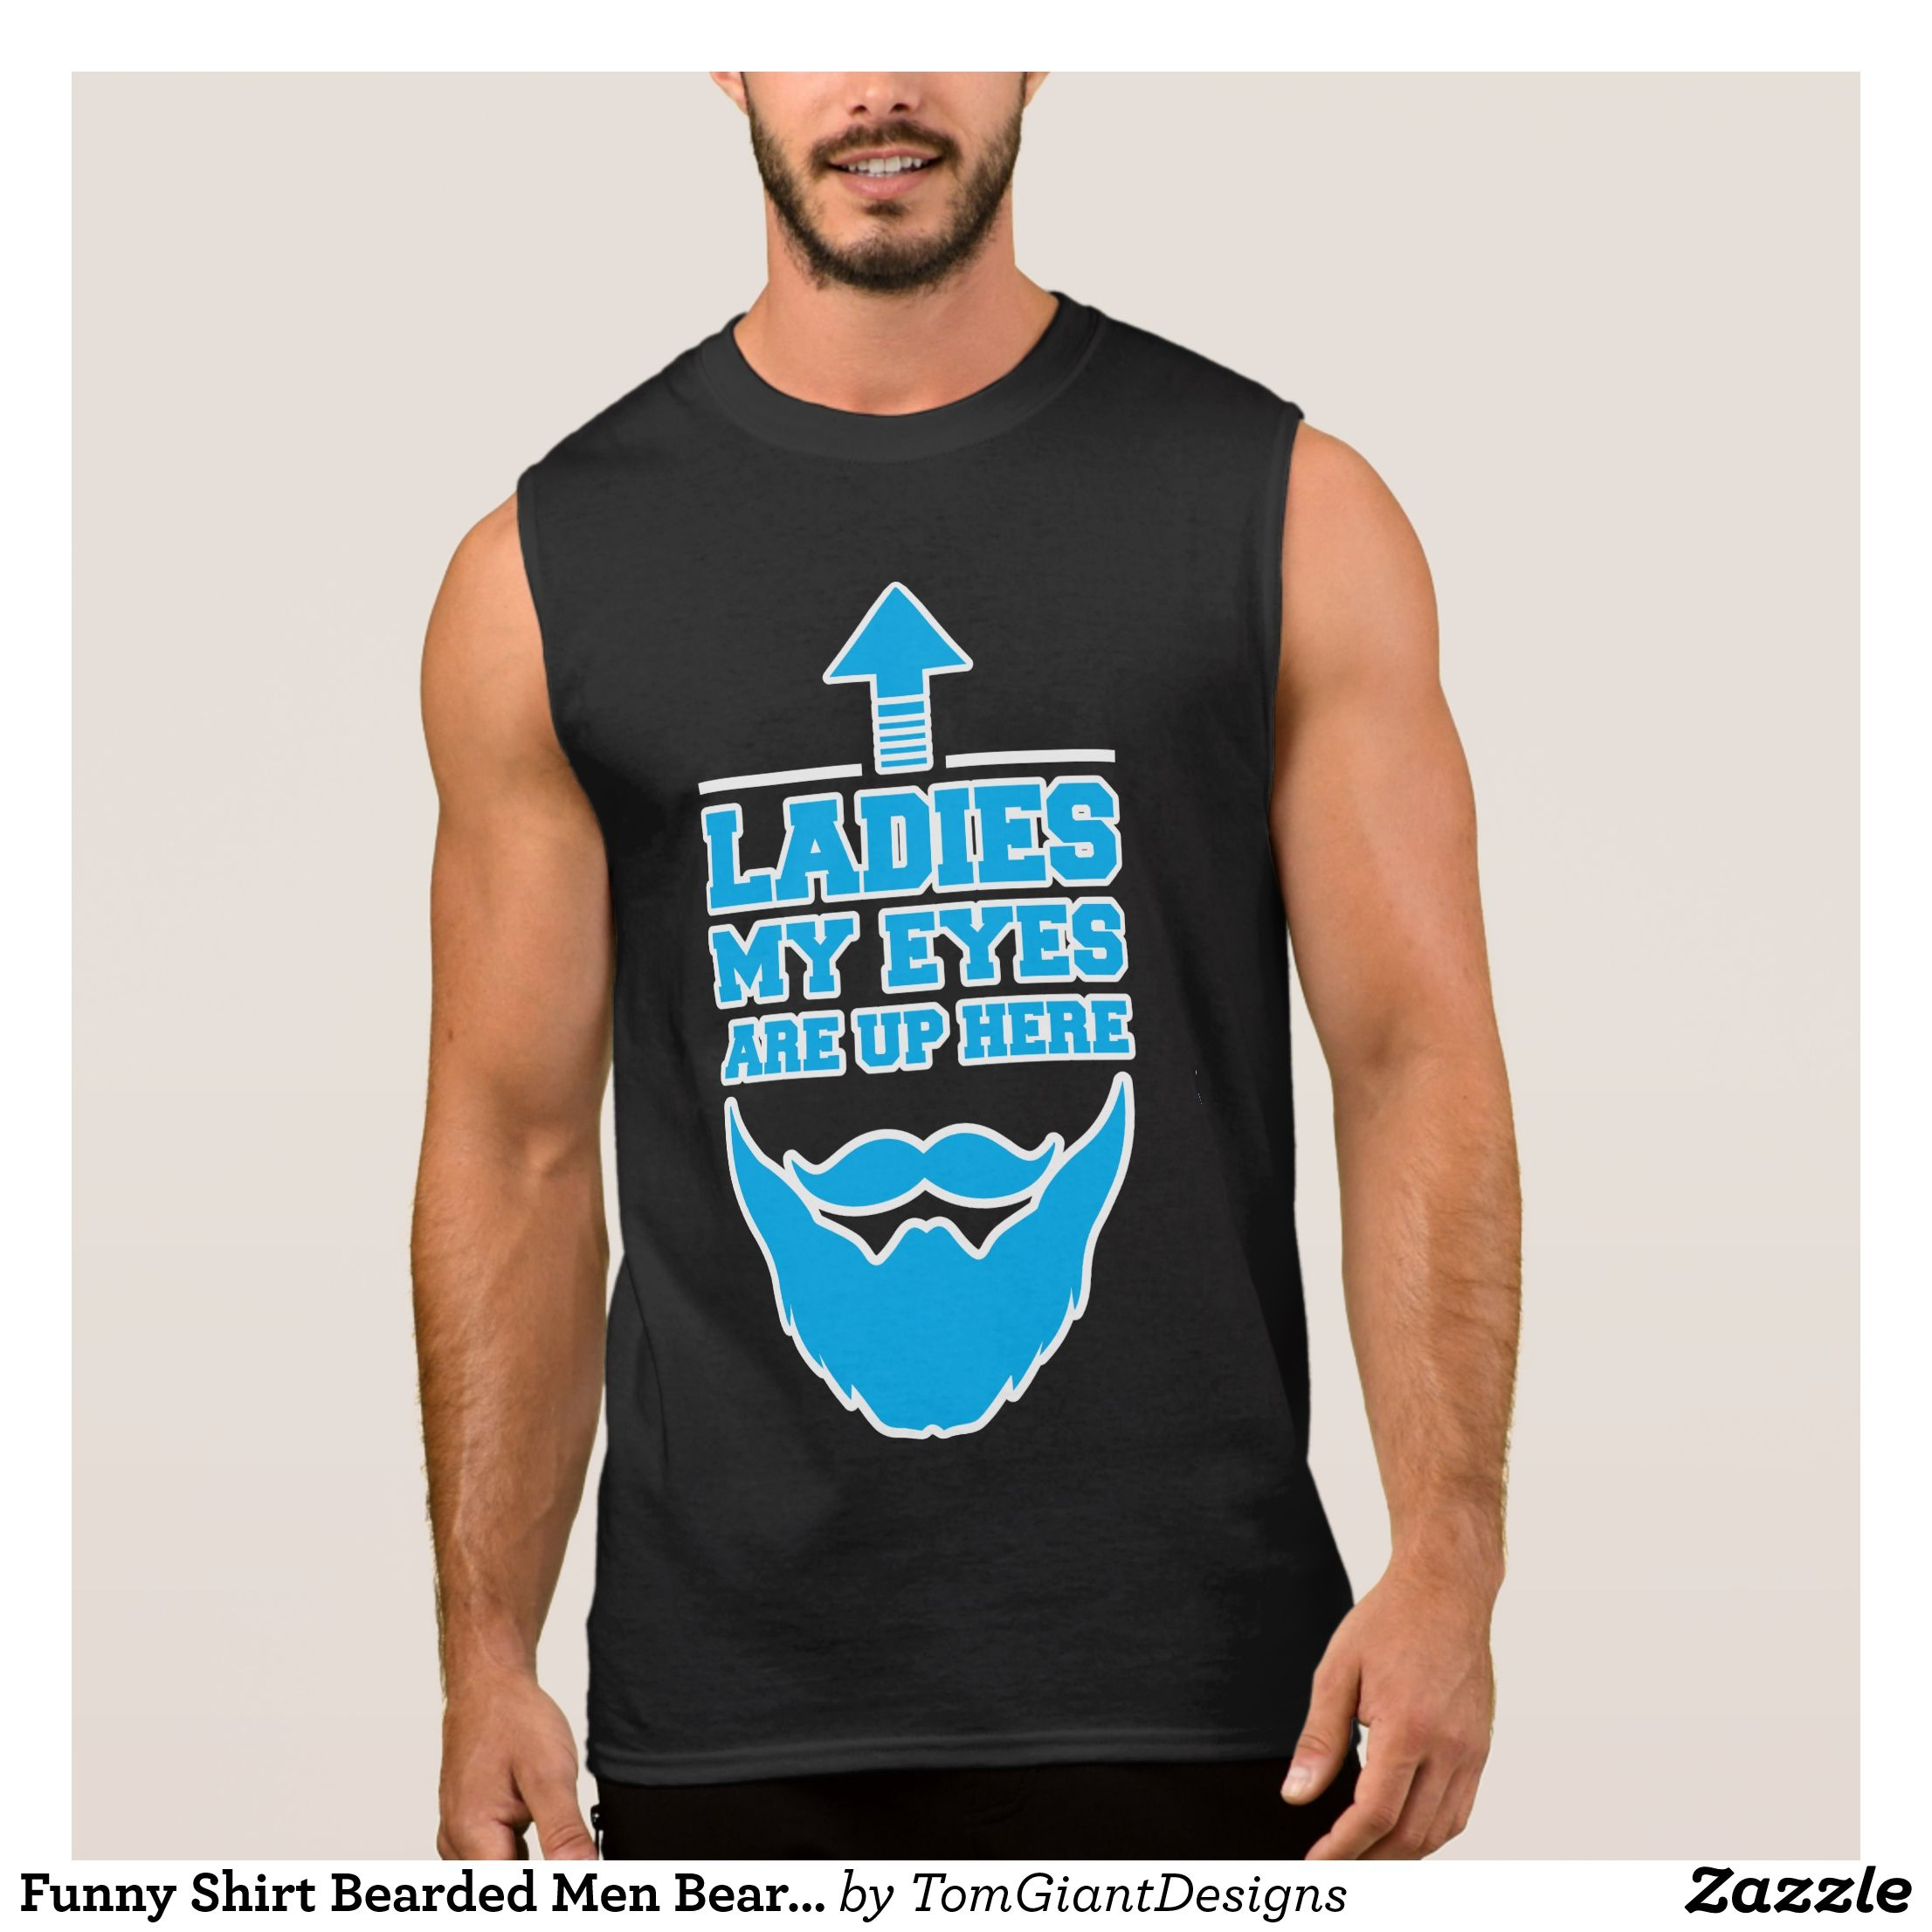 dd06ec7ab012bd Funny Shirt Bearded Men Beard Manly Father s Day - Comfy Moisture-Wicking  Sport Tank Tops By Talented Fashion   Graphic Designers -  tanktops  gym   exercise ...